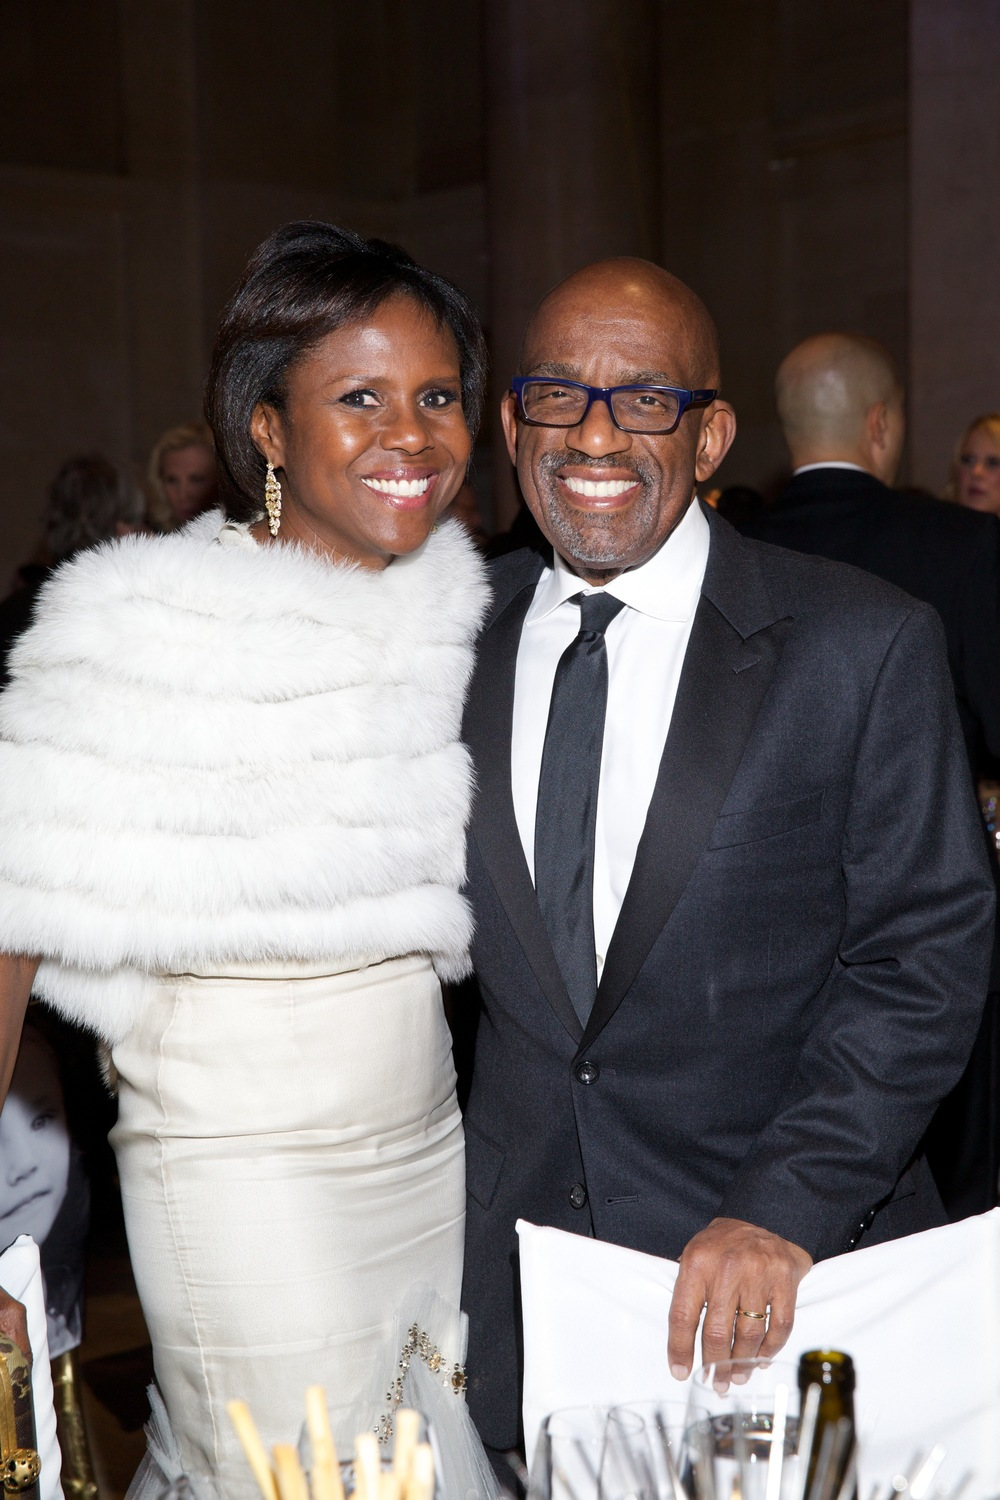 Deborah Roberts and Al Roker ©2015 Julie Skarratt Photography, Inc./U.S. Fund for UNICEF